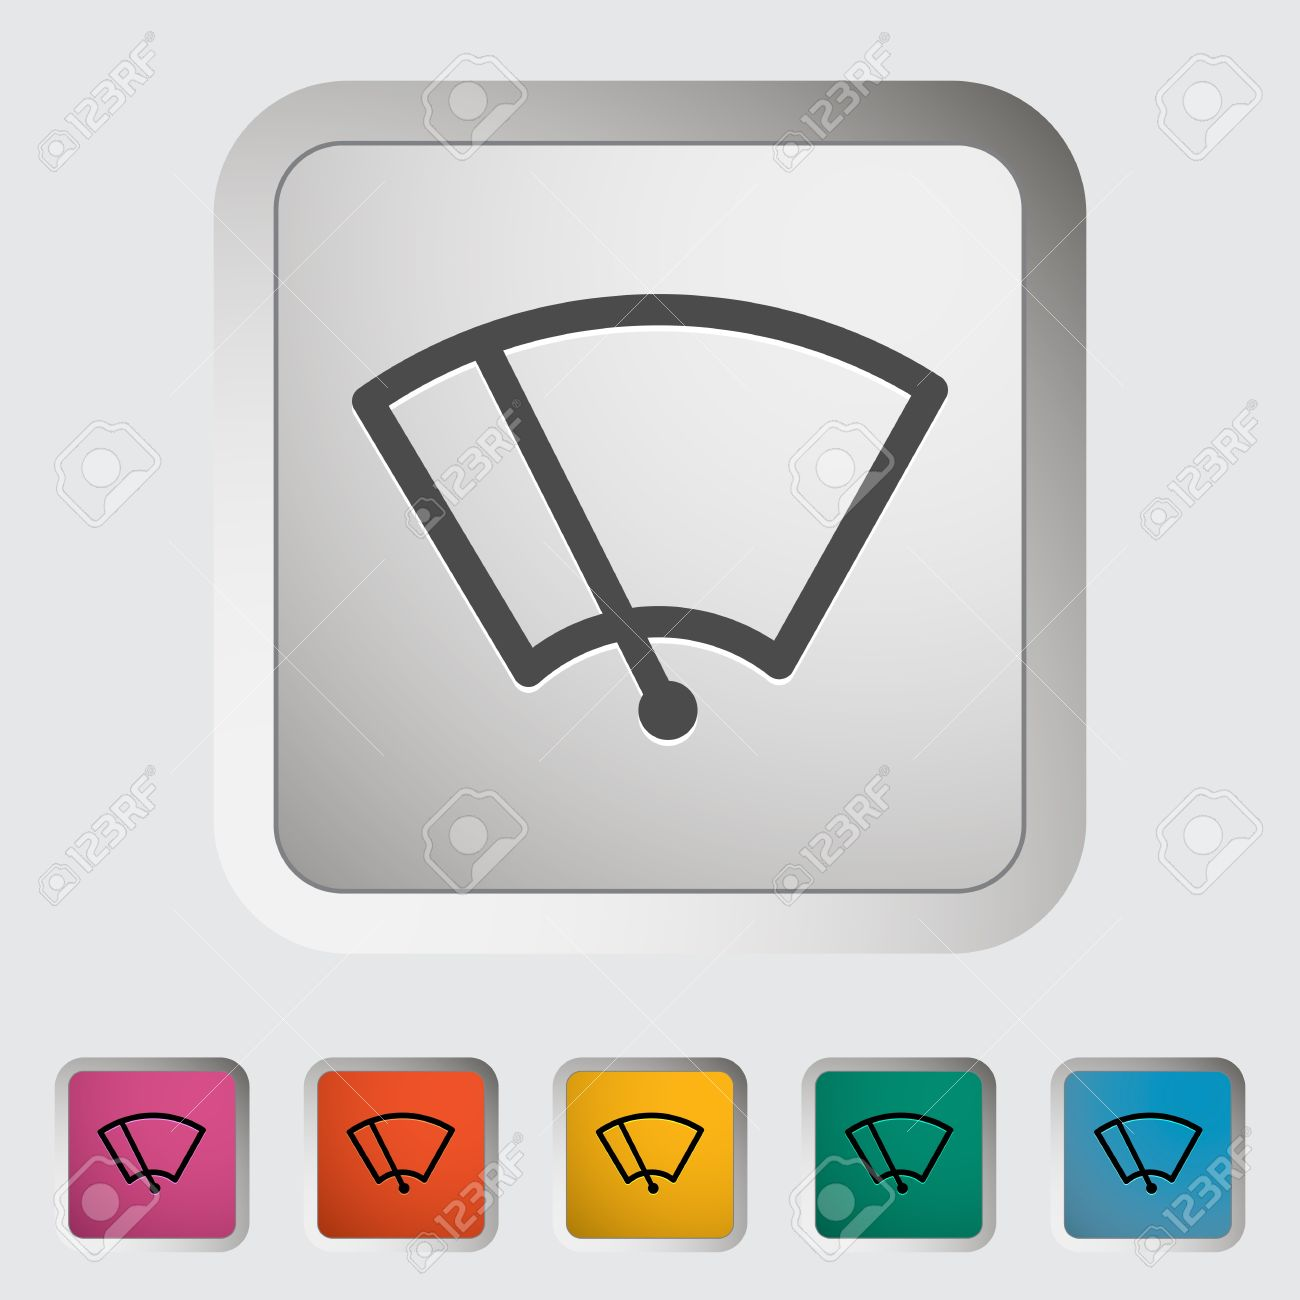 Car Icon Wiper. Vector Illustration. Royalty Free Cliparts.